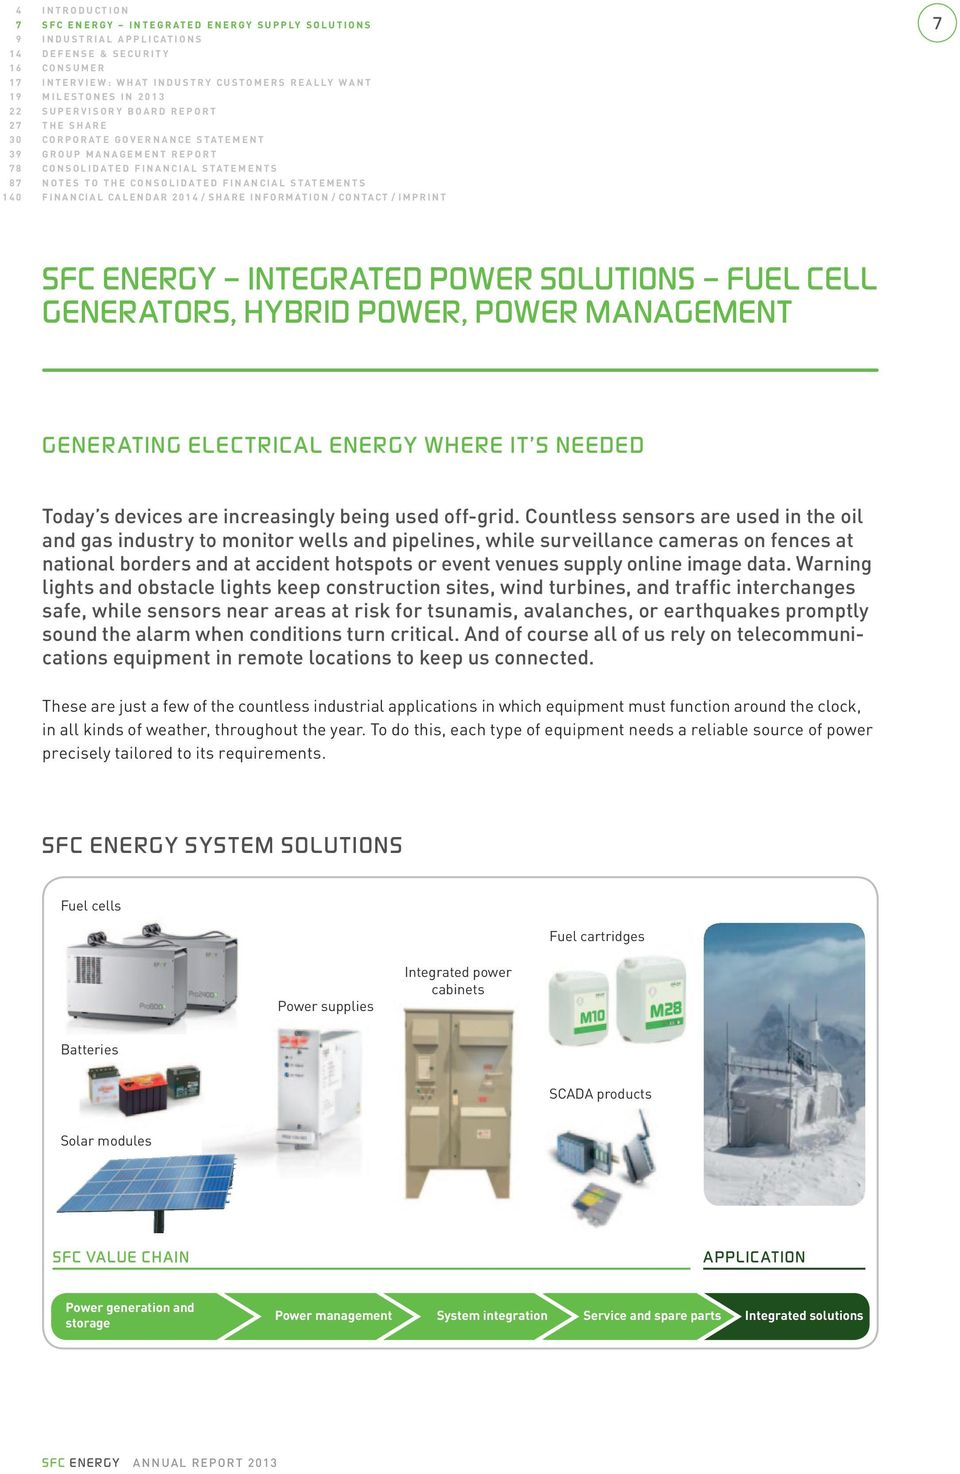 calendar 2014 / SharE InFormatIon / contact / ImPrInt 7 SFC ENERGY integrated power SolutioNS FuEl CEll GENERAtoRS, hybrid power, power management GENERAtiNG ElECtRiCAl ENERGY where it S NEEdEd Today